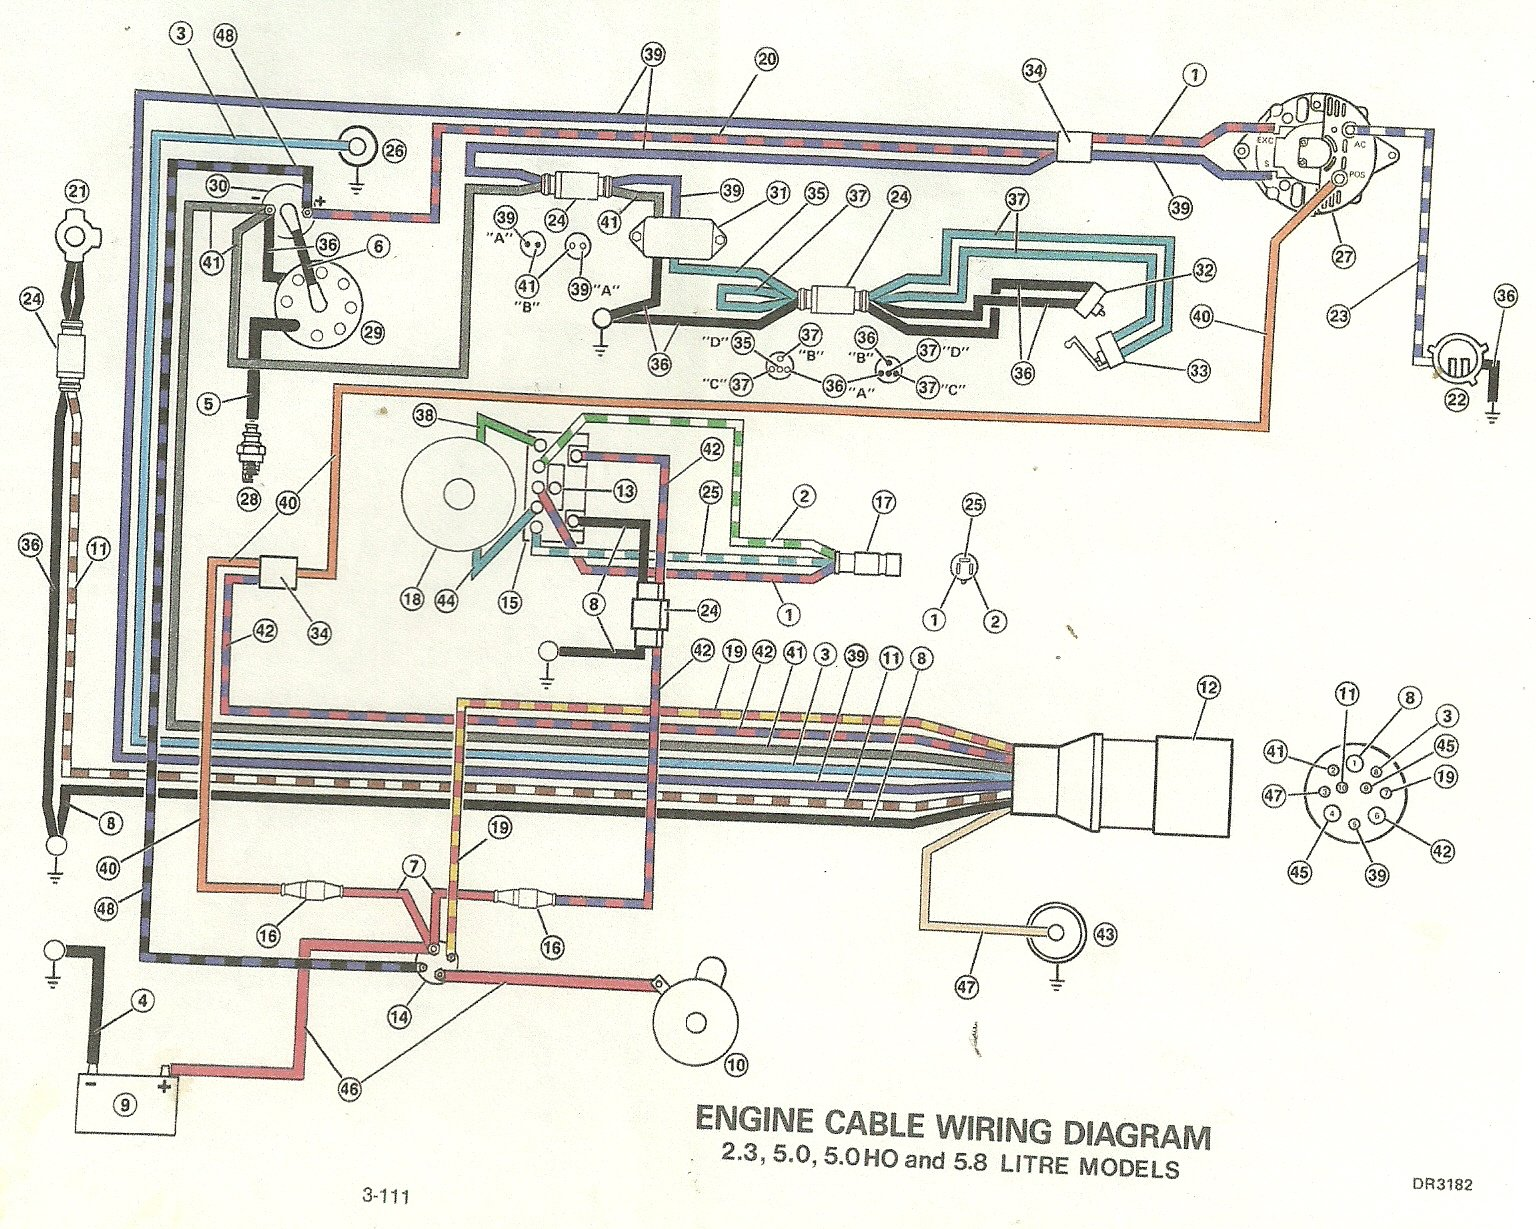 2012 04 16_230431_scan0011 omc wiring harness diagram johmson wiring harness \u2022 wiring  at creativeand.co